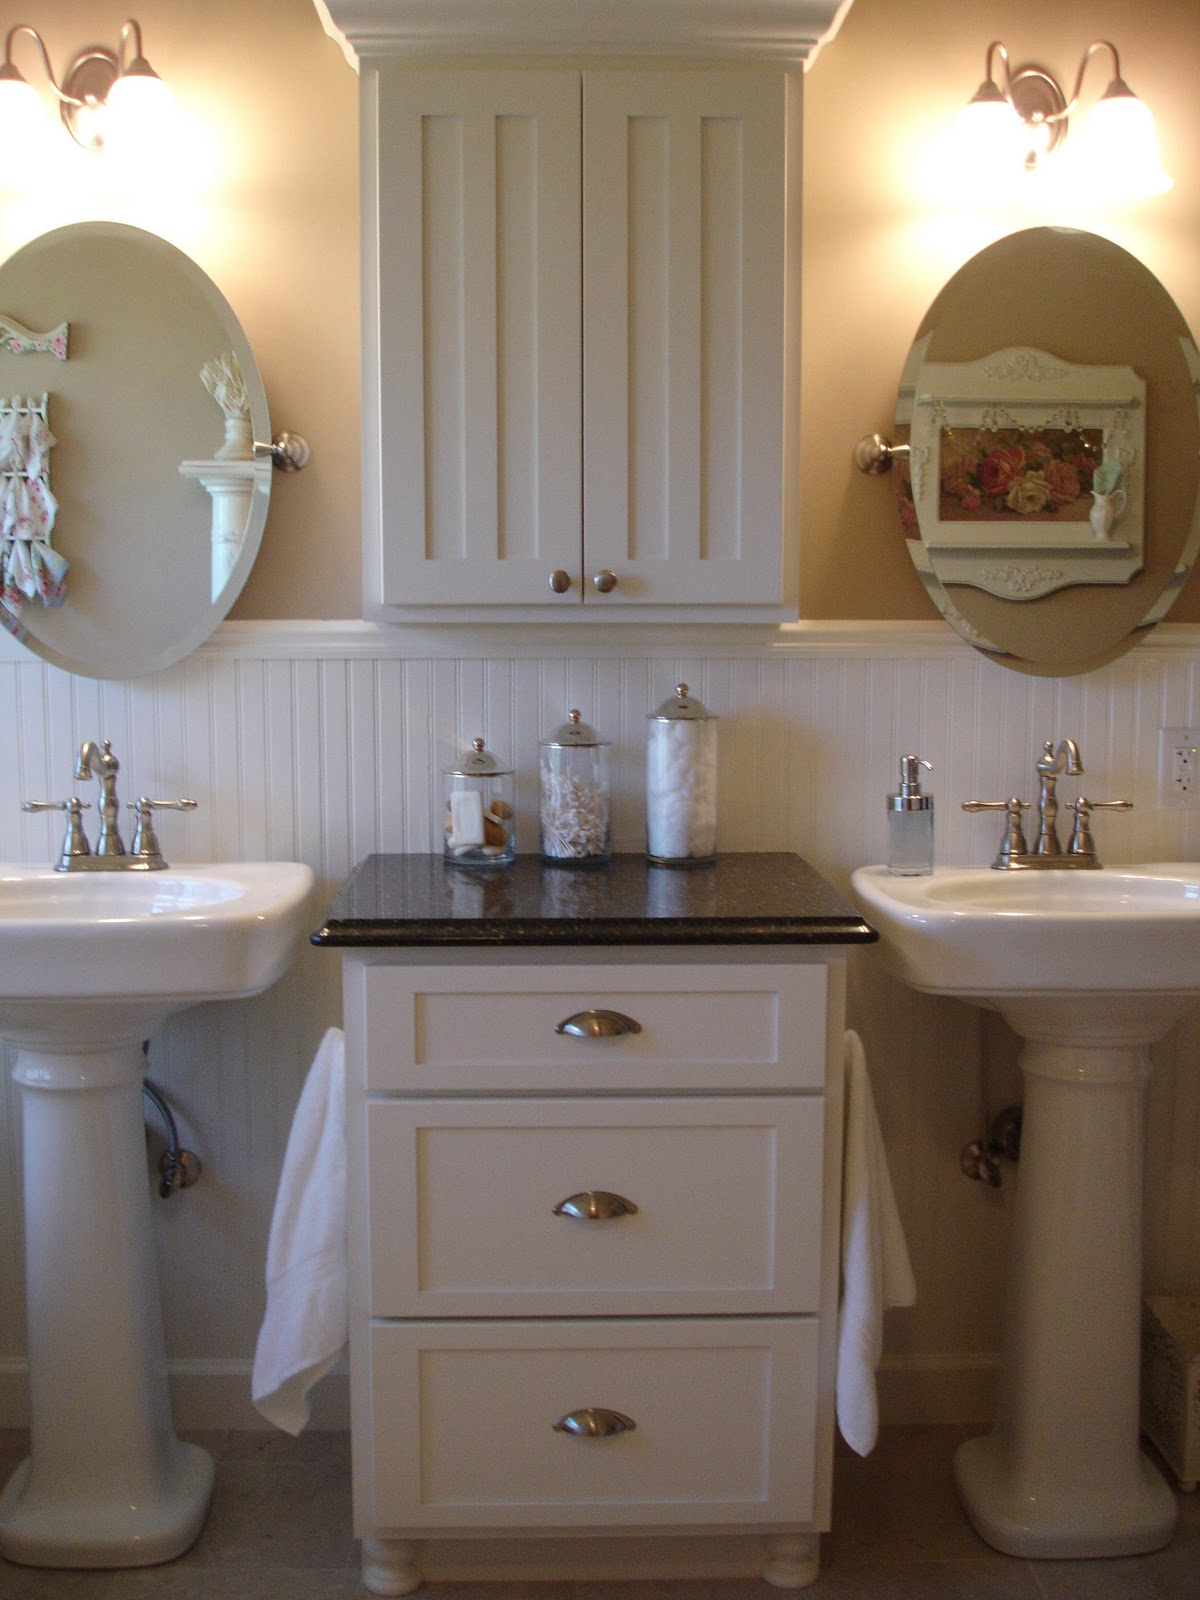 Forever decorating my master bathroom update for Double vanity for small bathroom